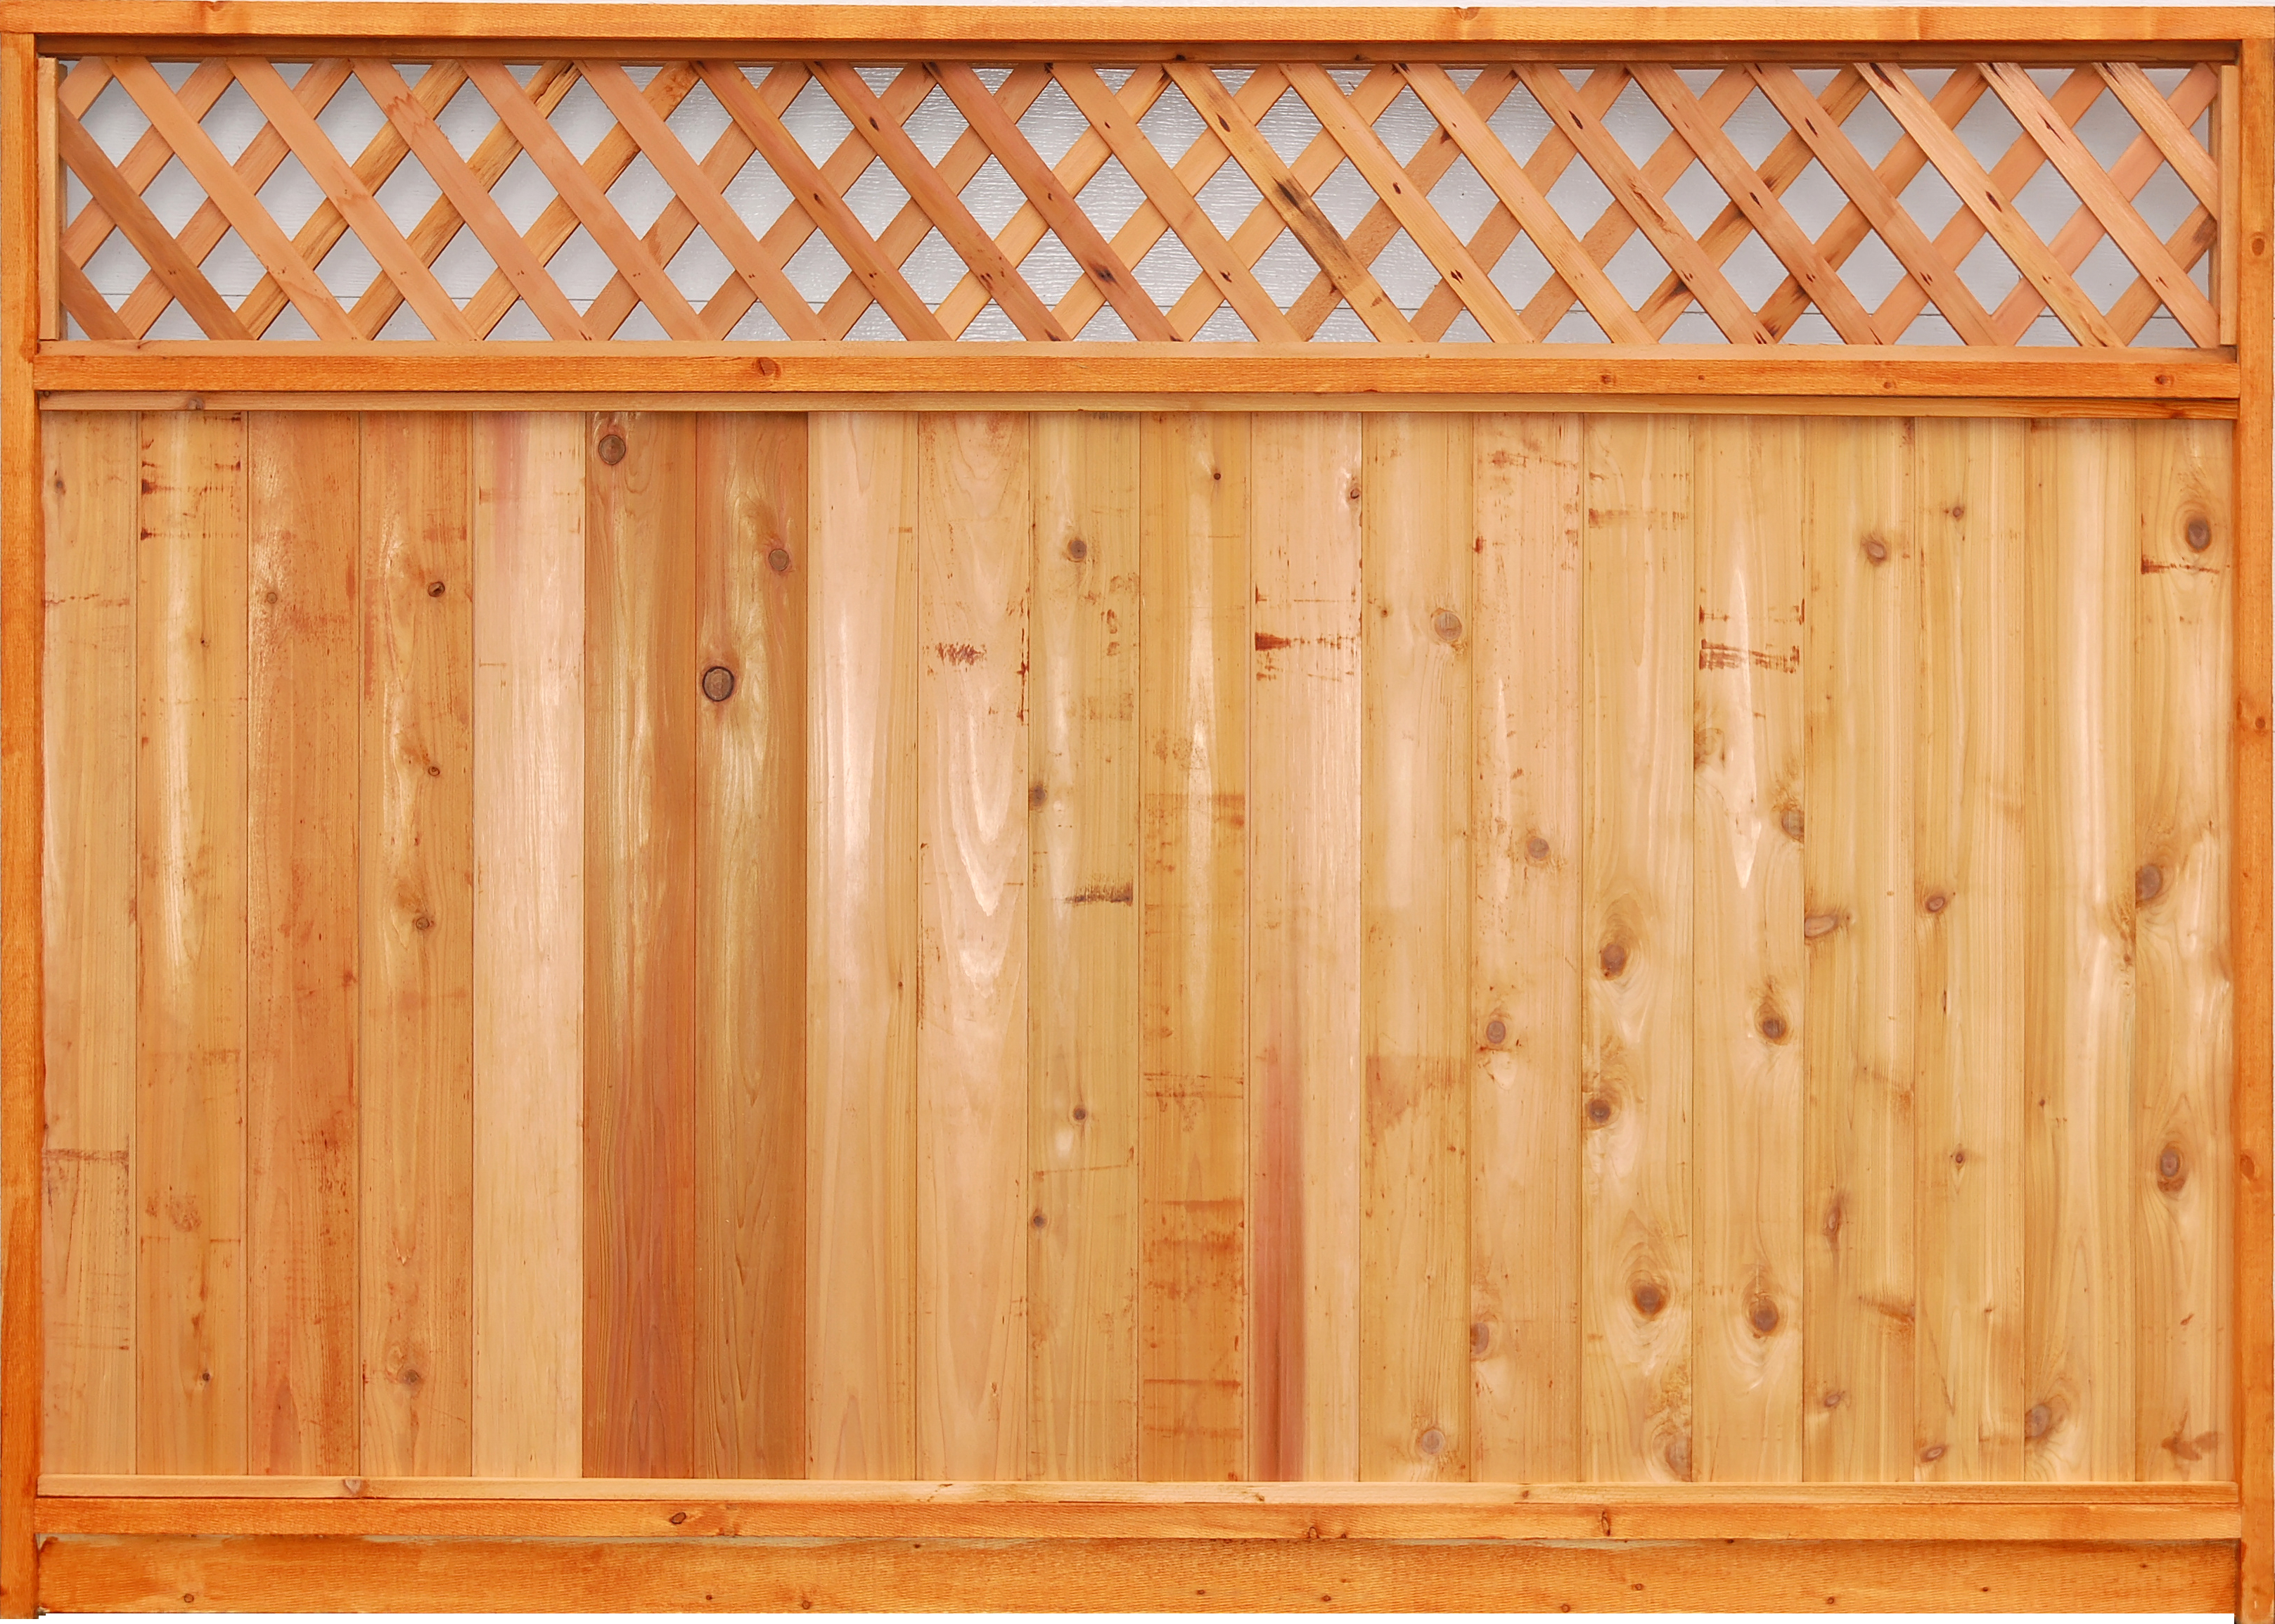 Superb img of Aim Cedar Works Ltd. Quality Fence Panels Decks and Renovations with #C36E08 color and 3235x2309 pixels